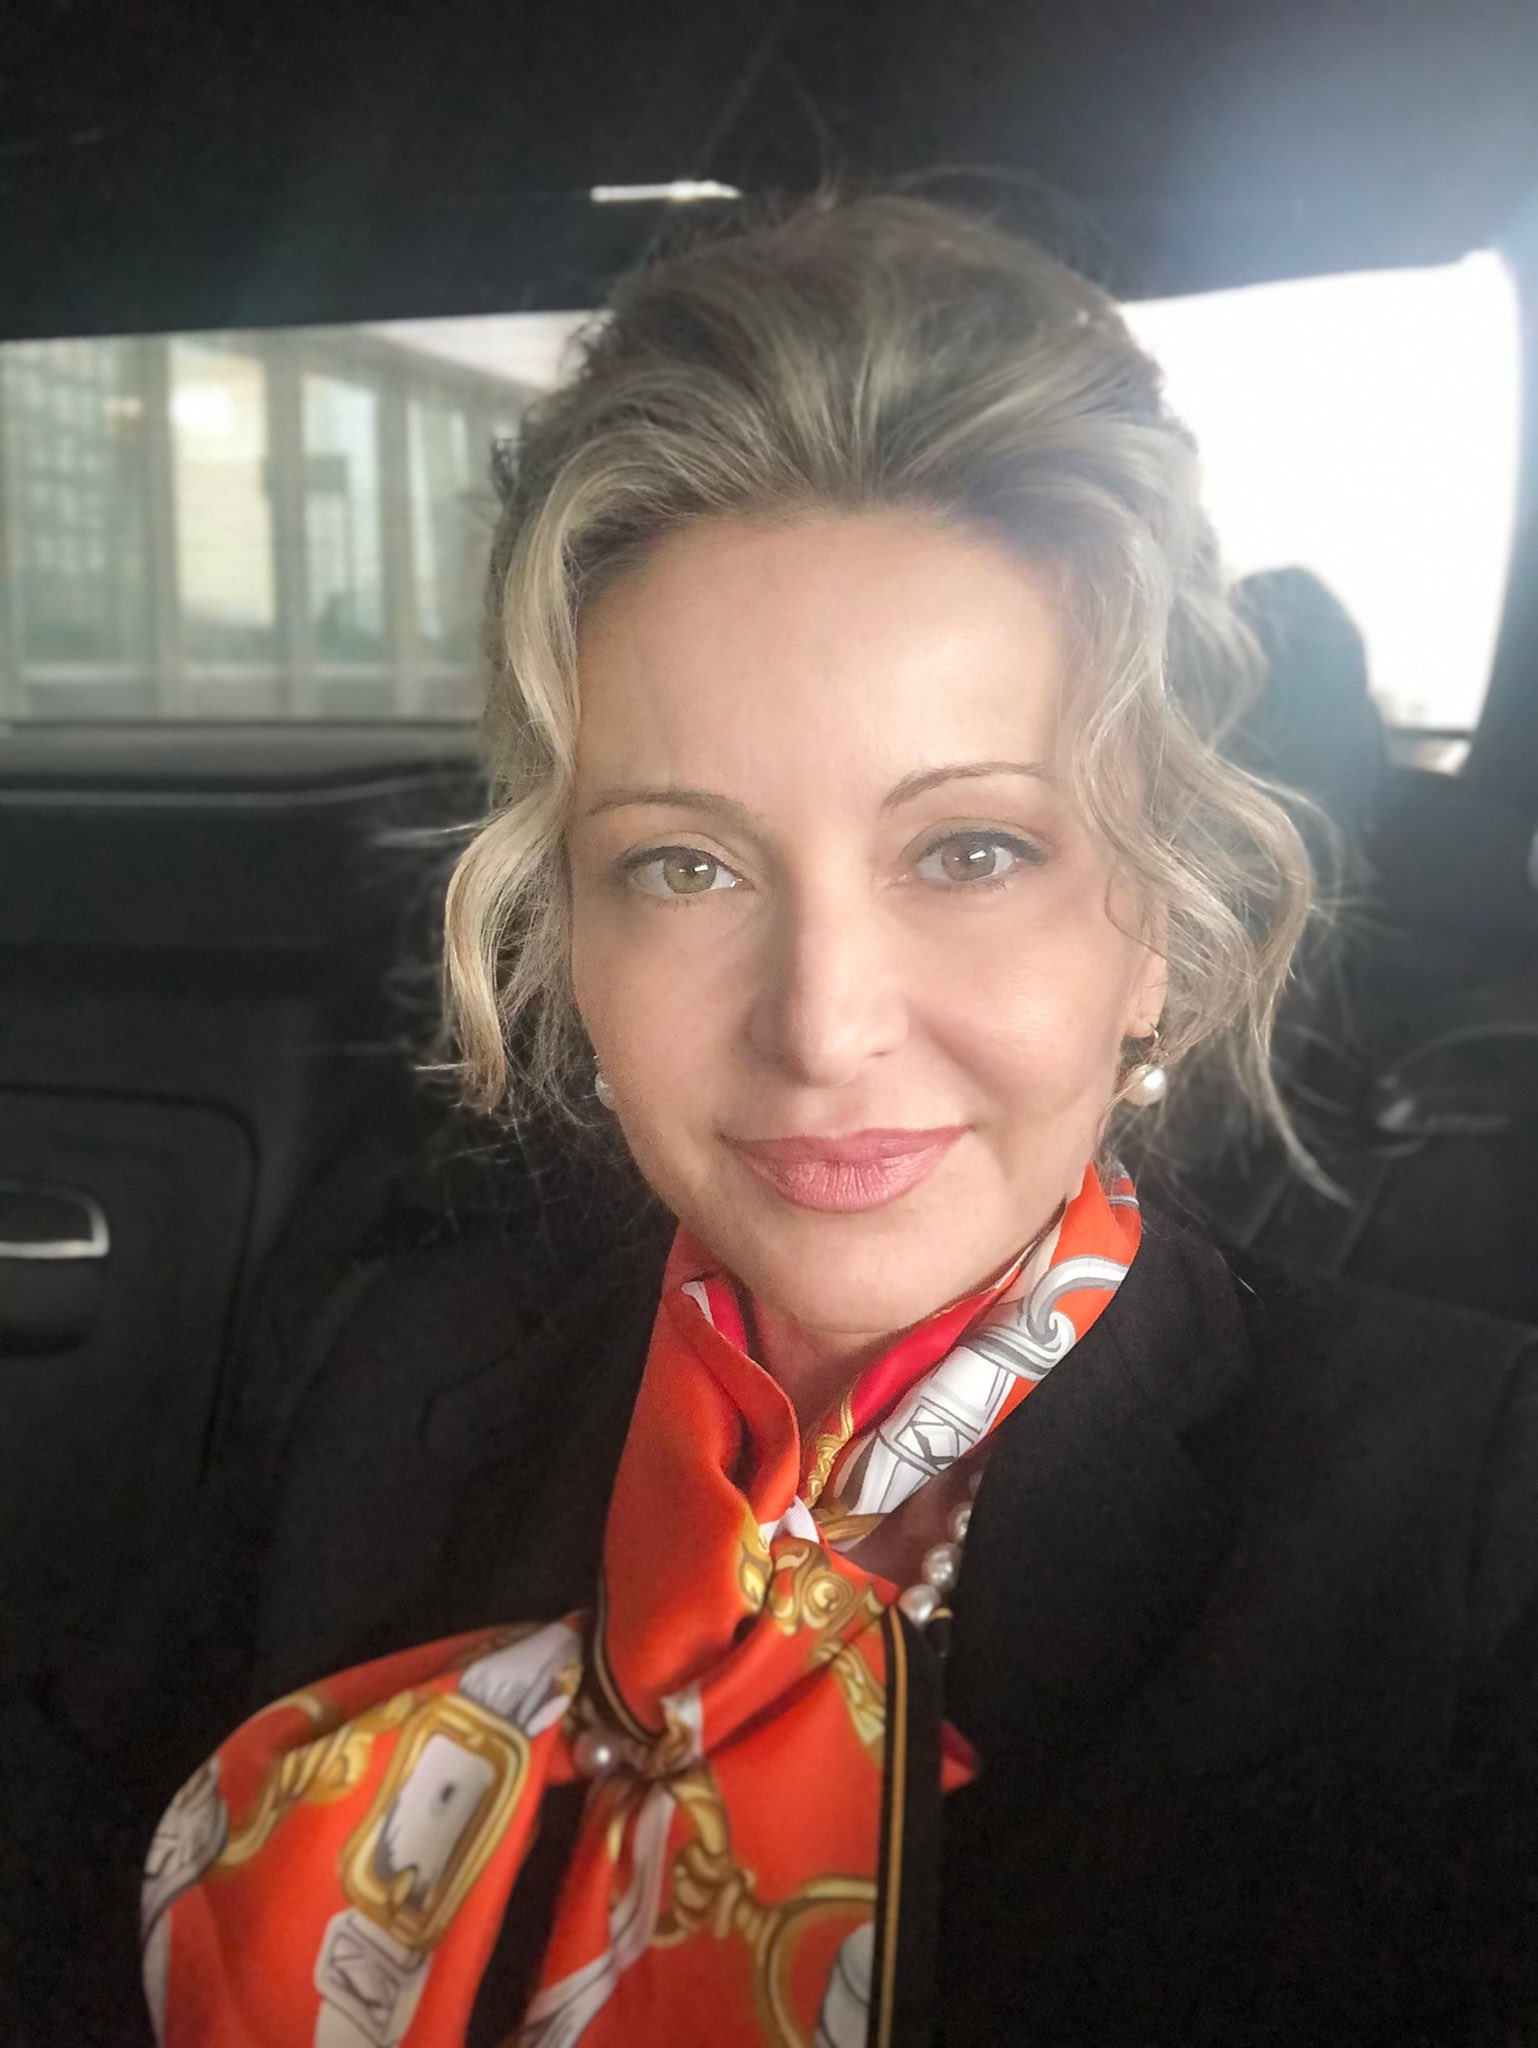 Sandra Navidi @SandraNavidi As the #WEF2020 in #Davos2020 comes to a close, I'm on my last leg but deliriously happy about the unique experience and all the wonderful encounters! Here on the 2.5-hour car-ride from the #WEF in #Davos to Zürich Airport to take off for #London. #SuperHubs